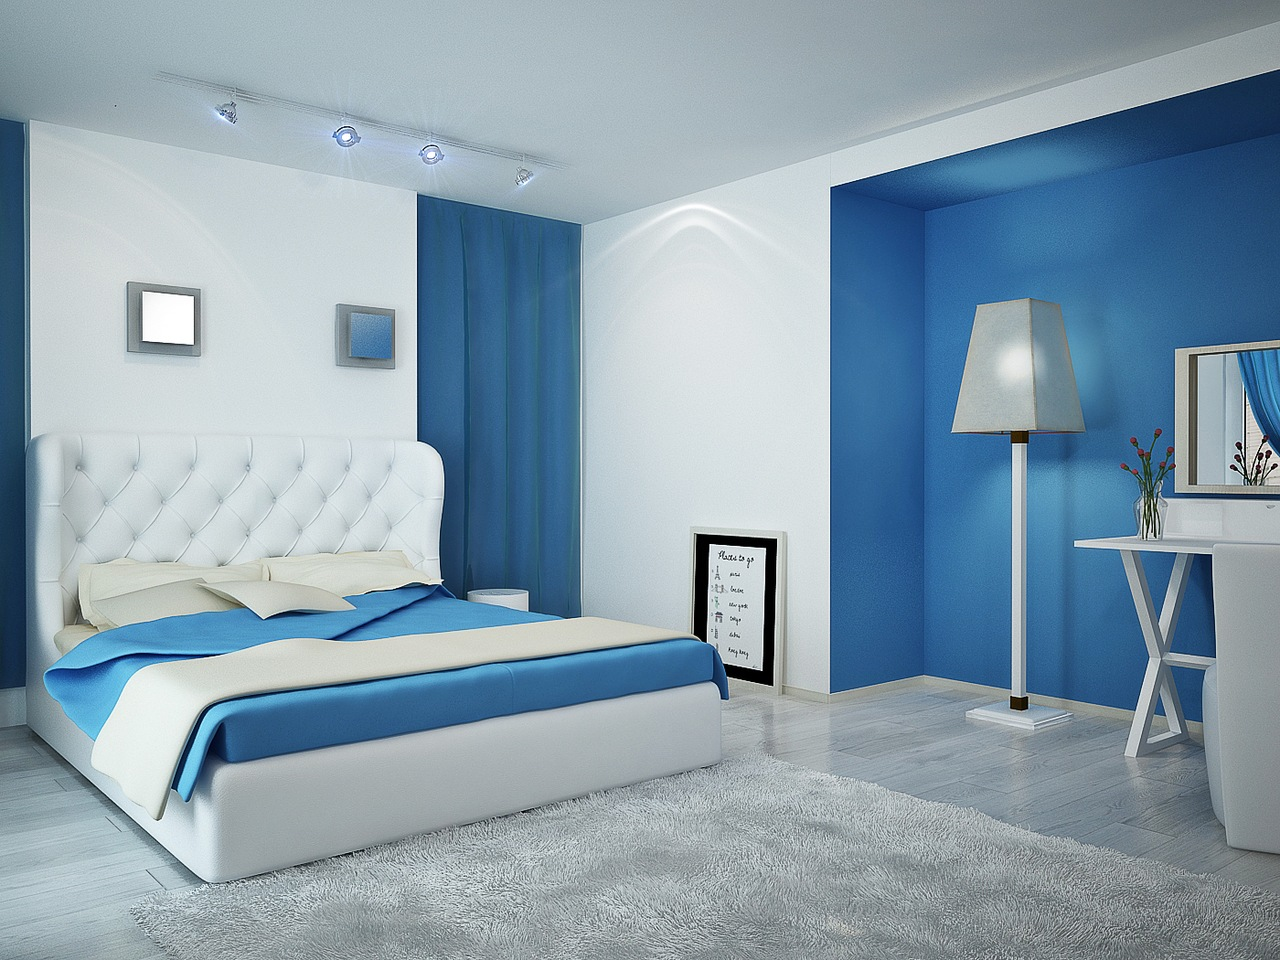 blue bedroom color popular - photo #48